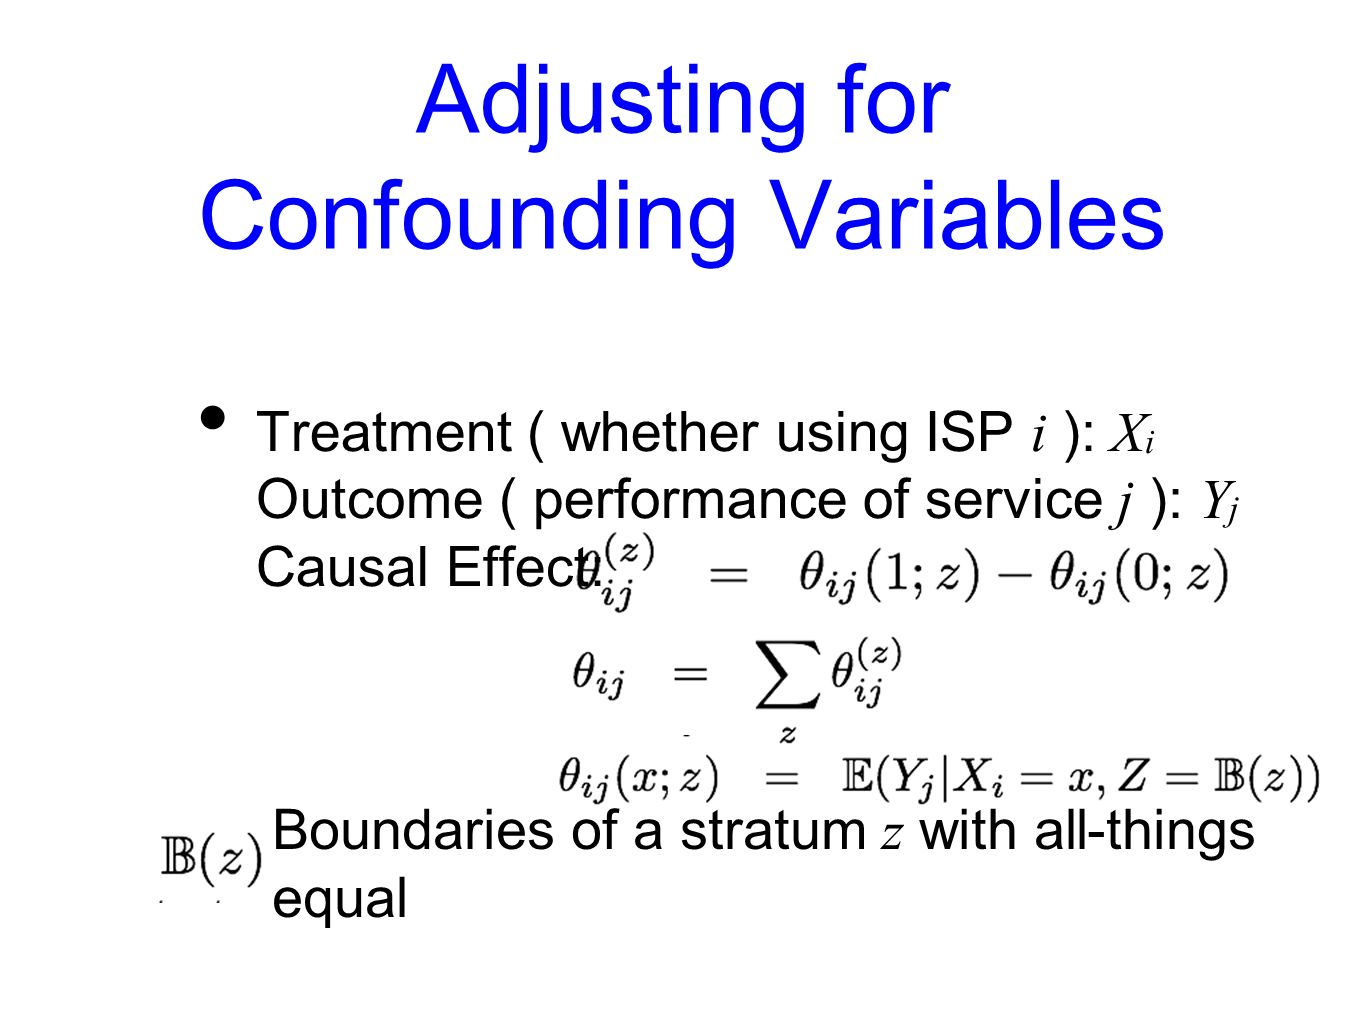 Adjusting for Confounding Variables Treatment ( whether using ISP i ): X i Outcome ( performance of service j ): Y j Causal Effect: Boundaries of a stratum z with all-things equal